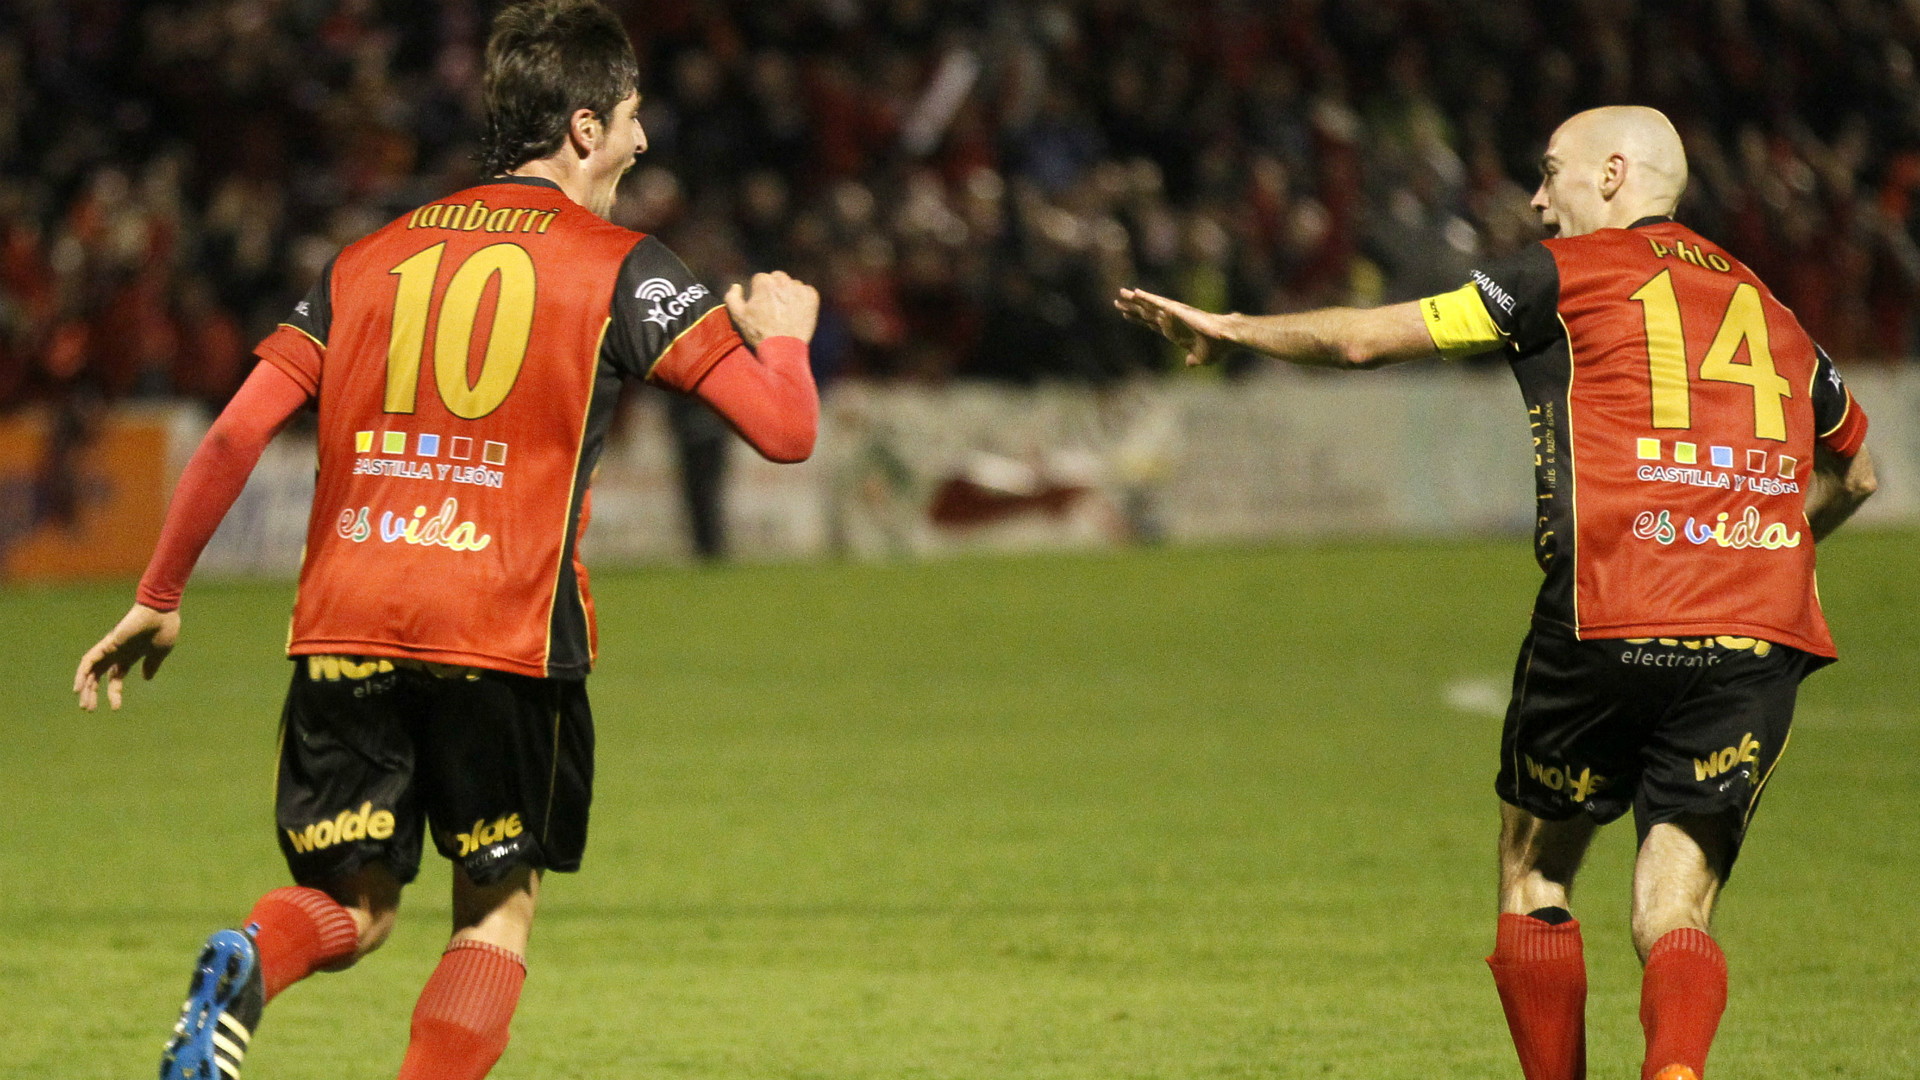 Video: Mirandes vs Malaga